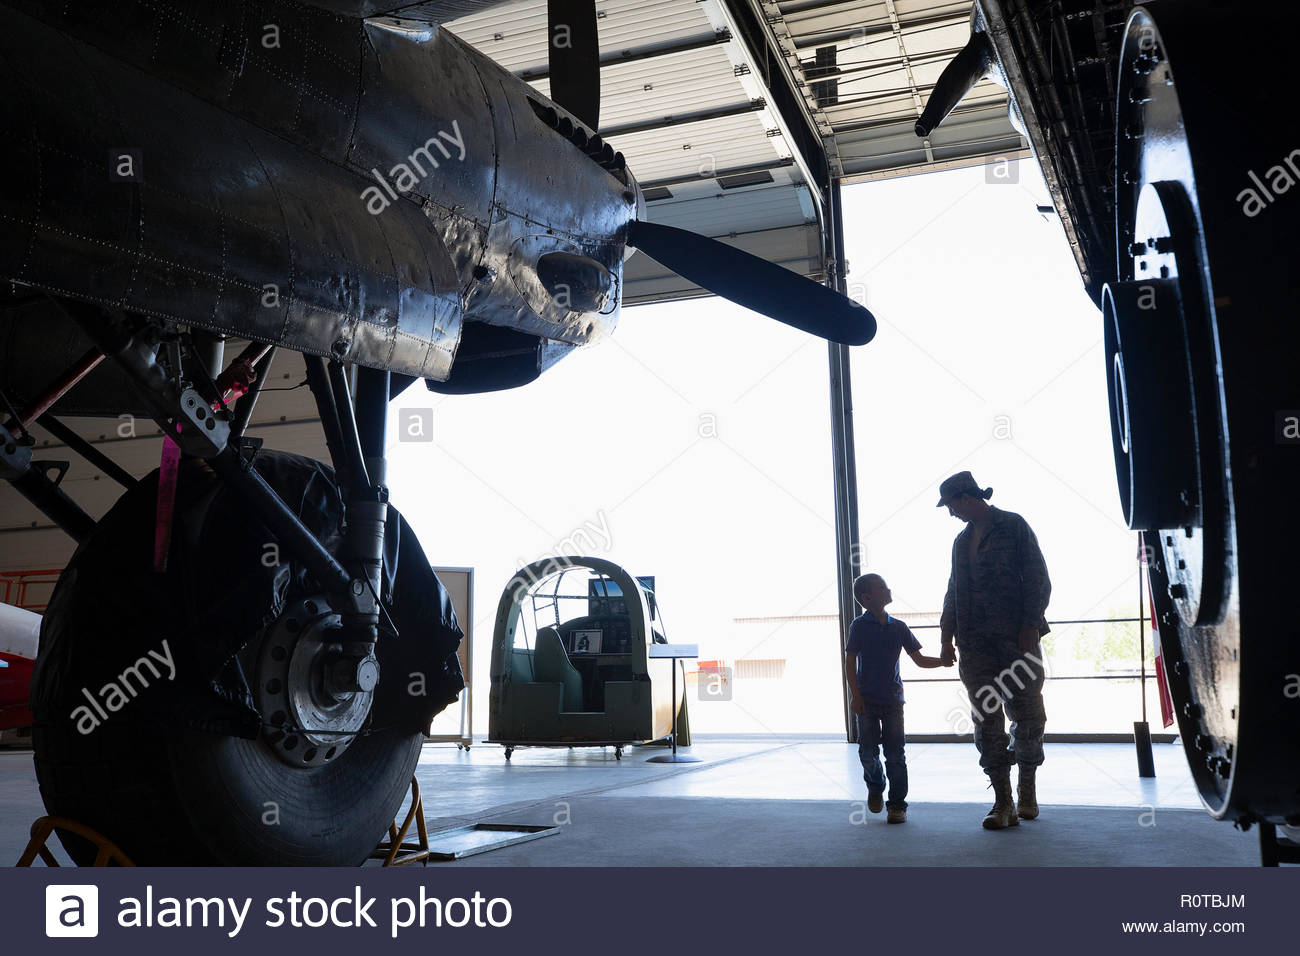 Female army engineer mother walking with son in military airplane hangar - Stock Image